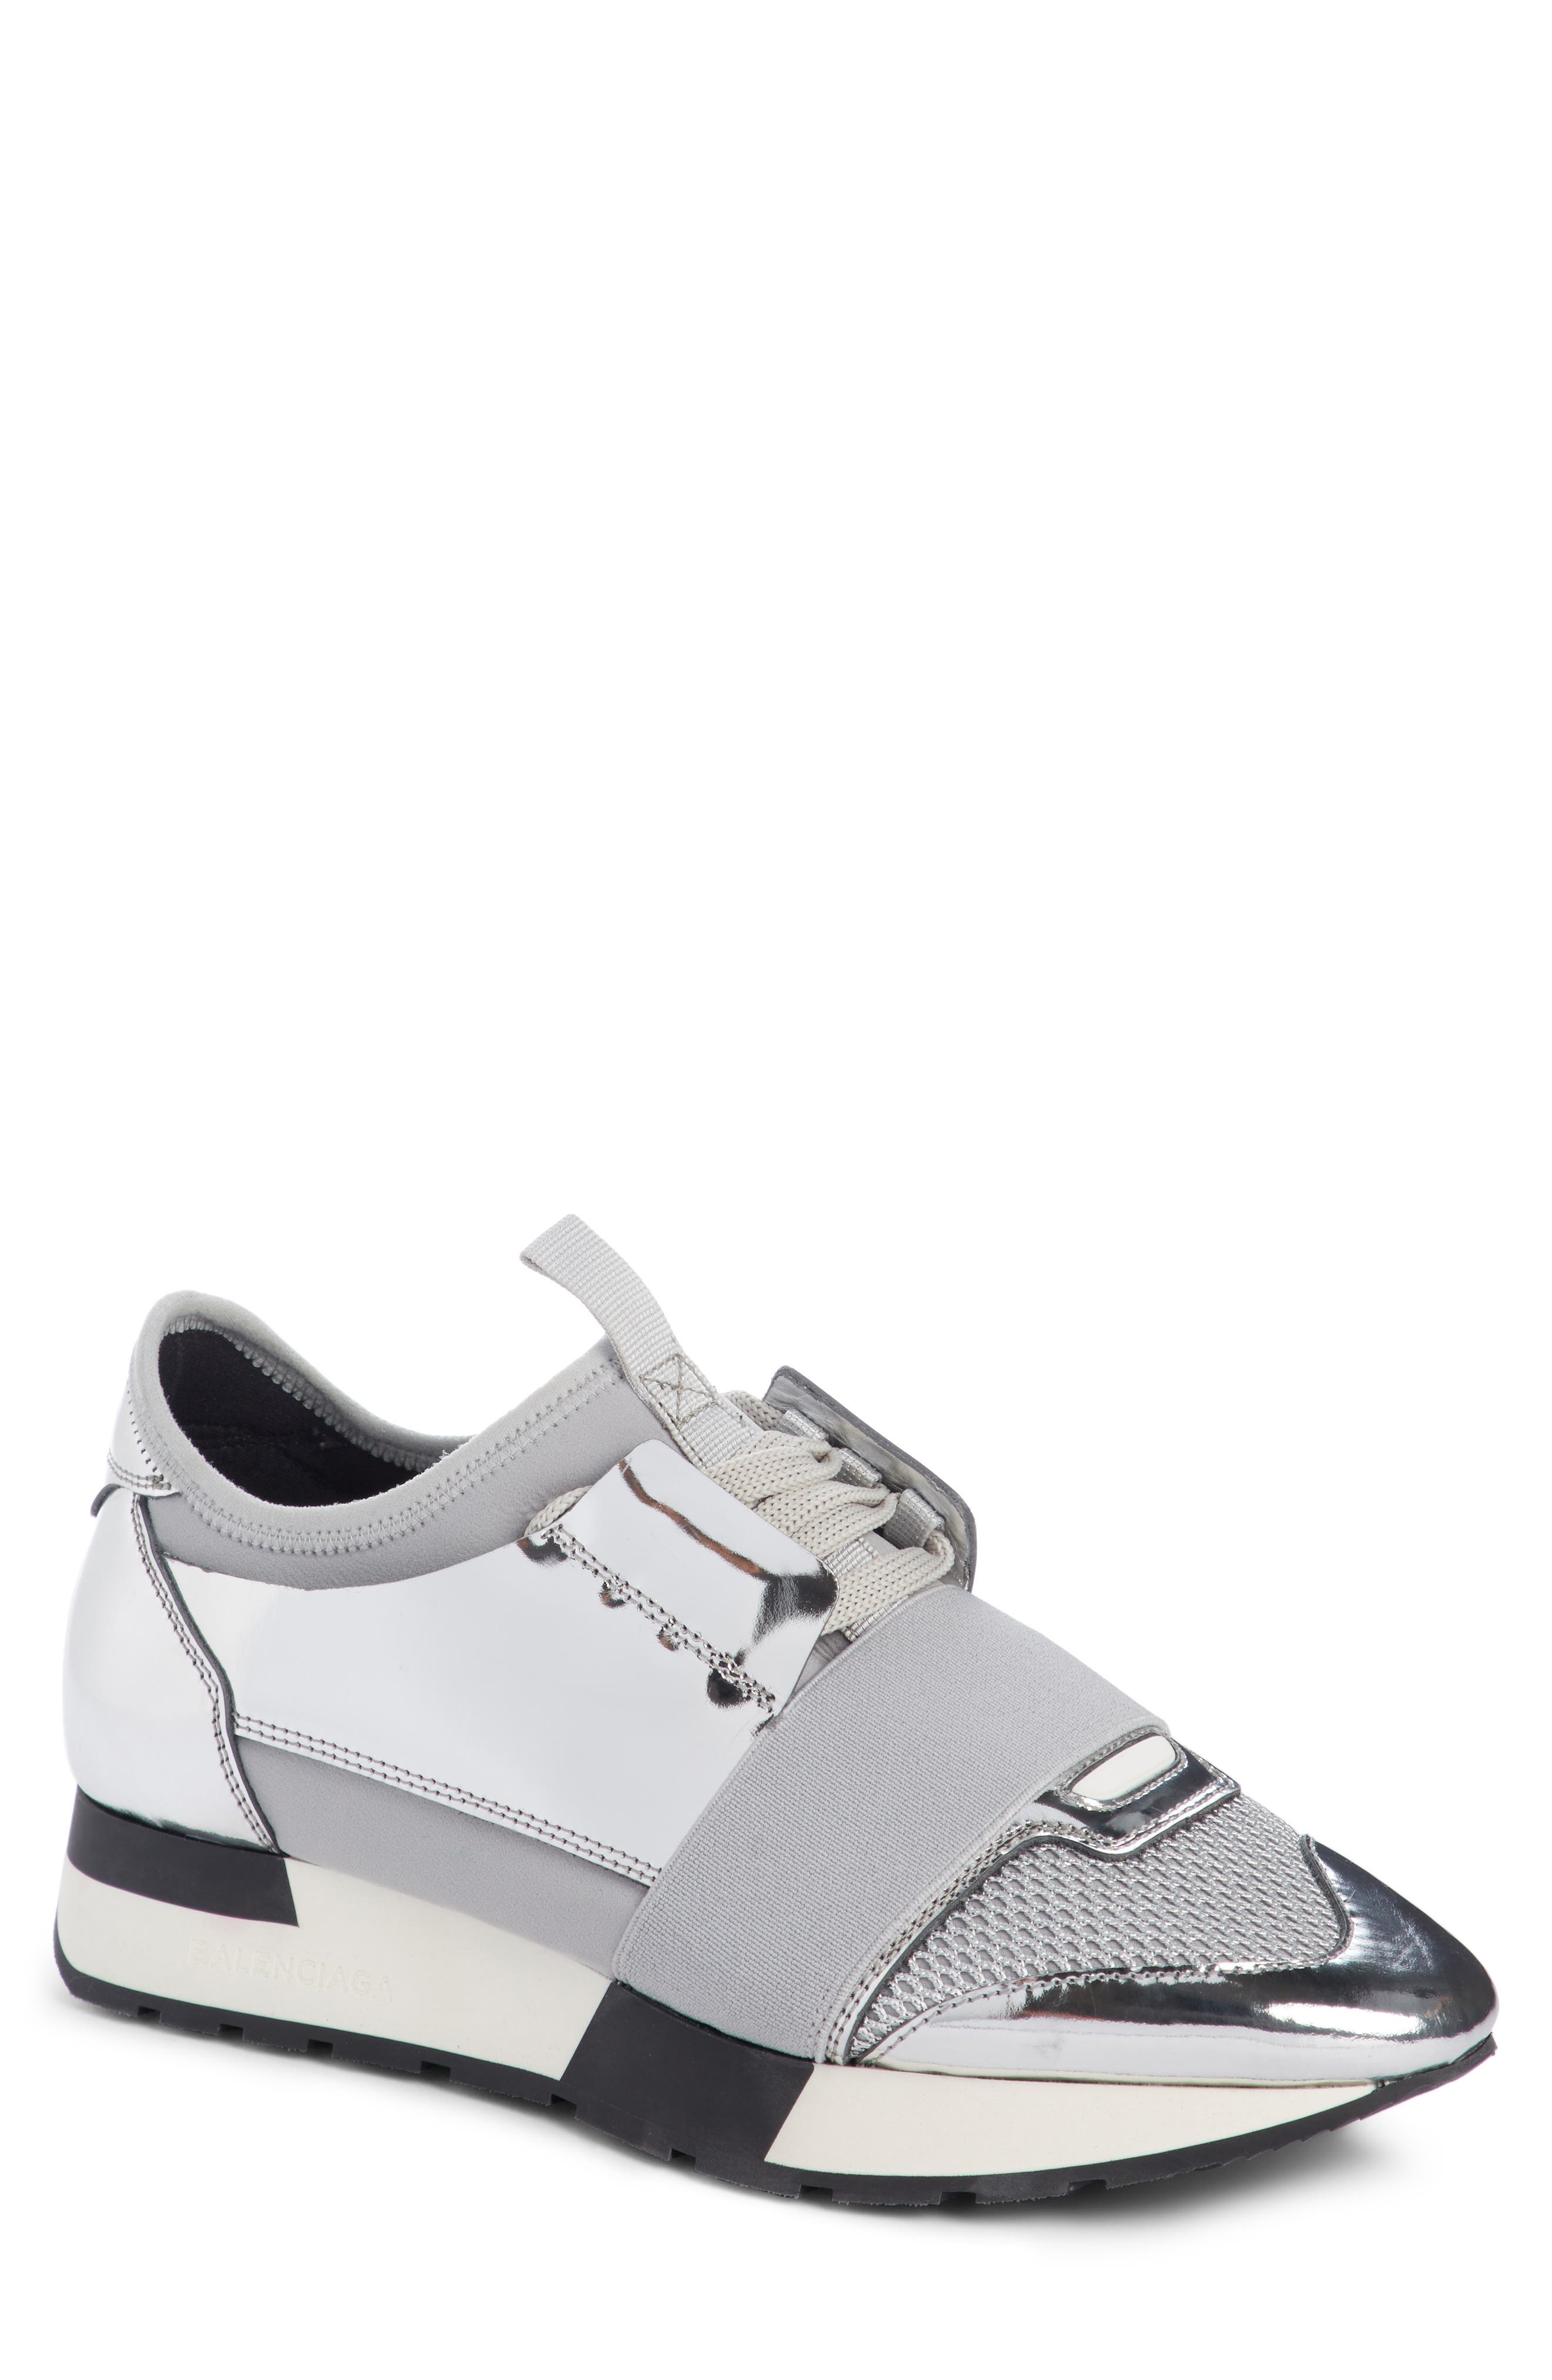 Alternate Image 1 Selected - Balenciaga Lace-Up Sneaker (Women)